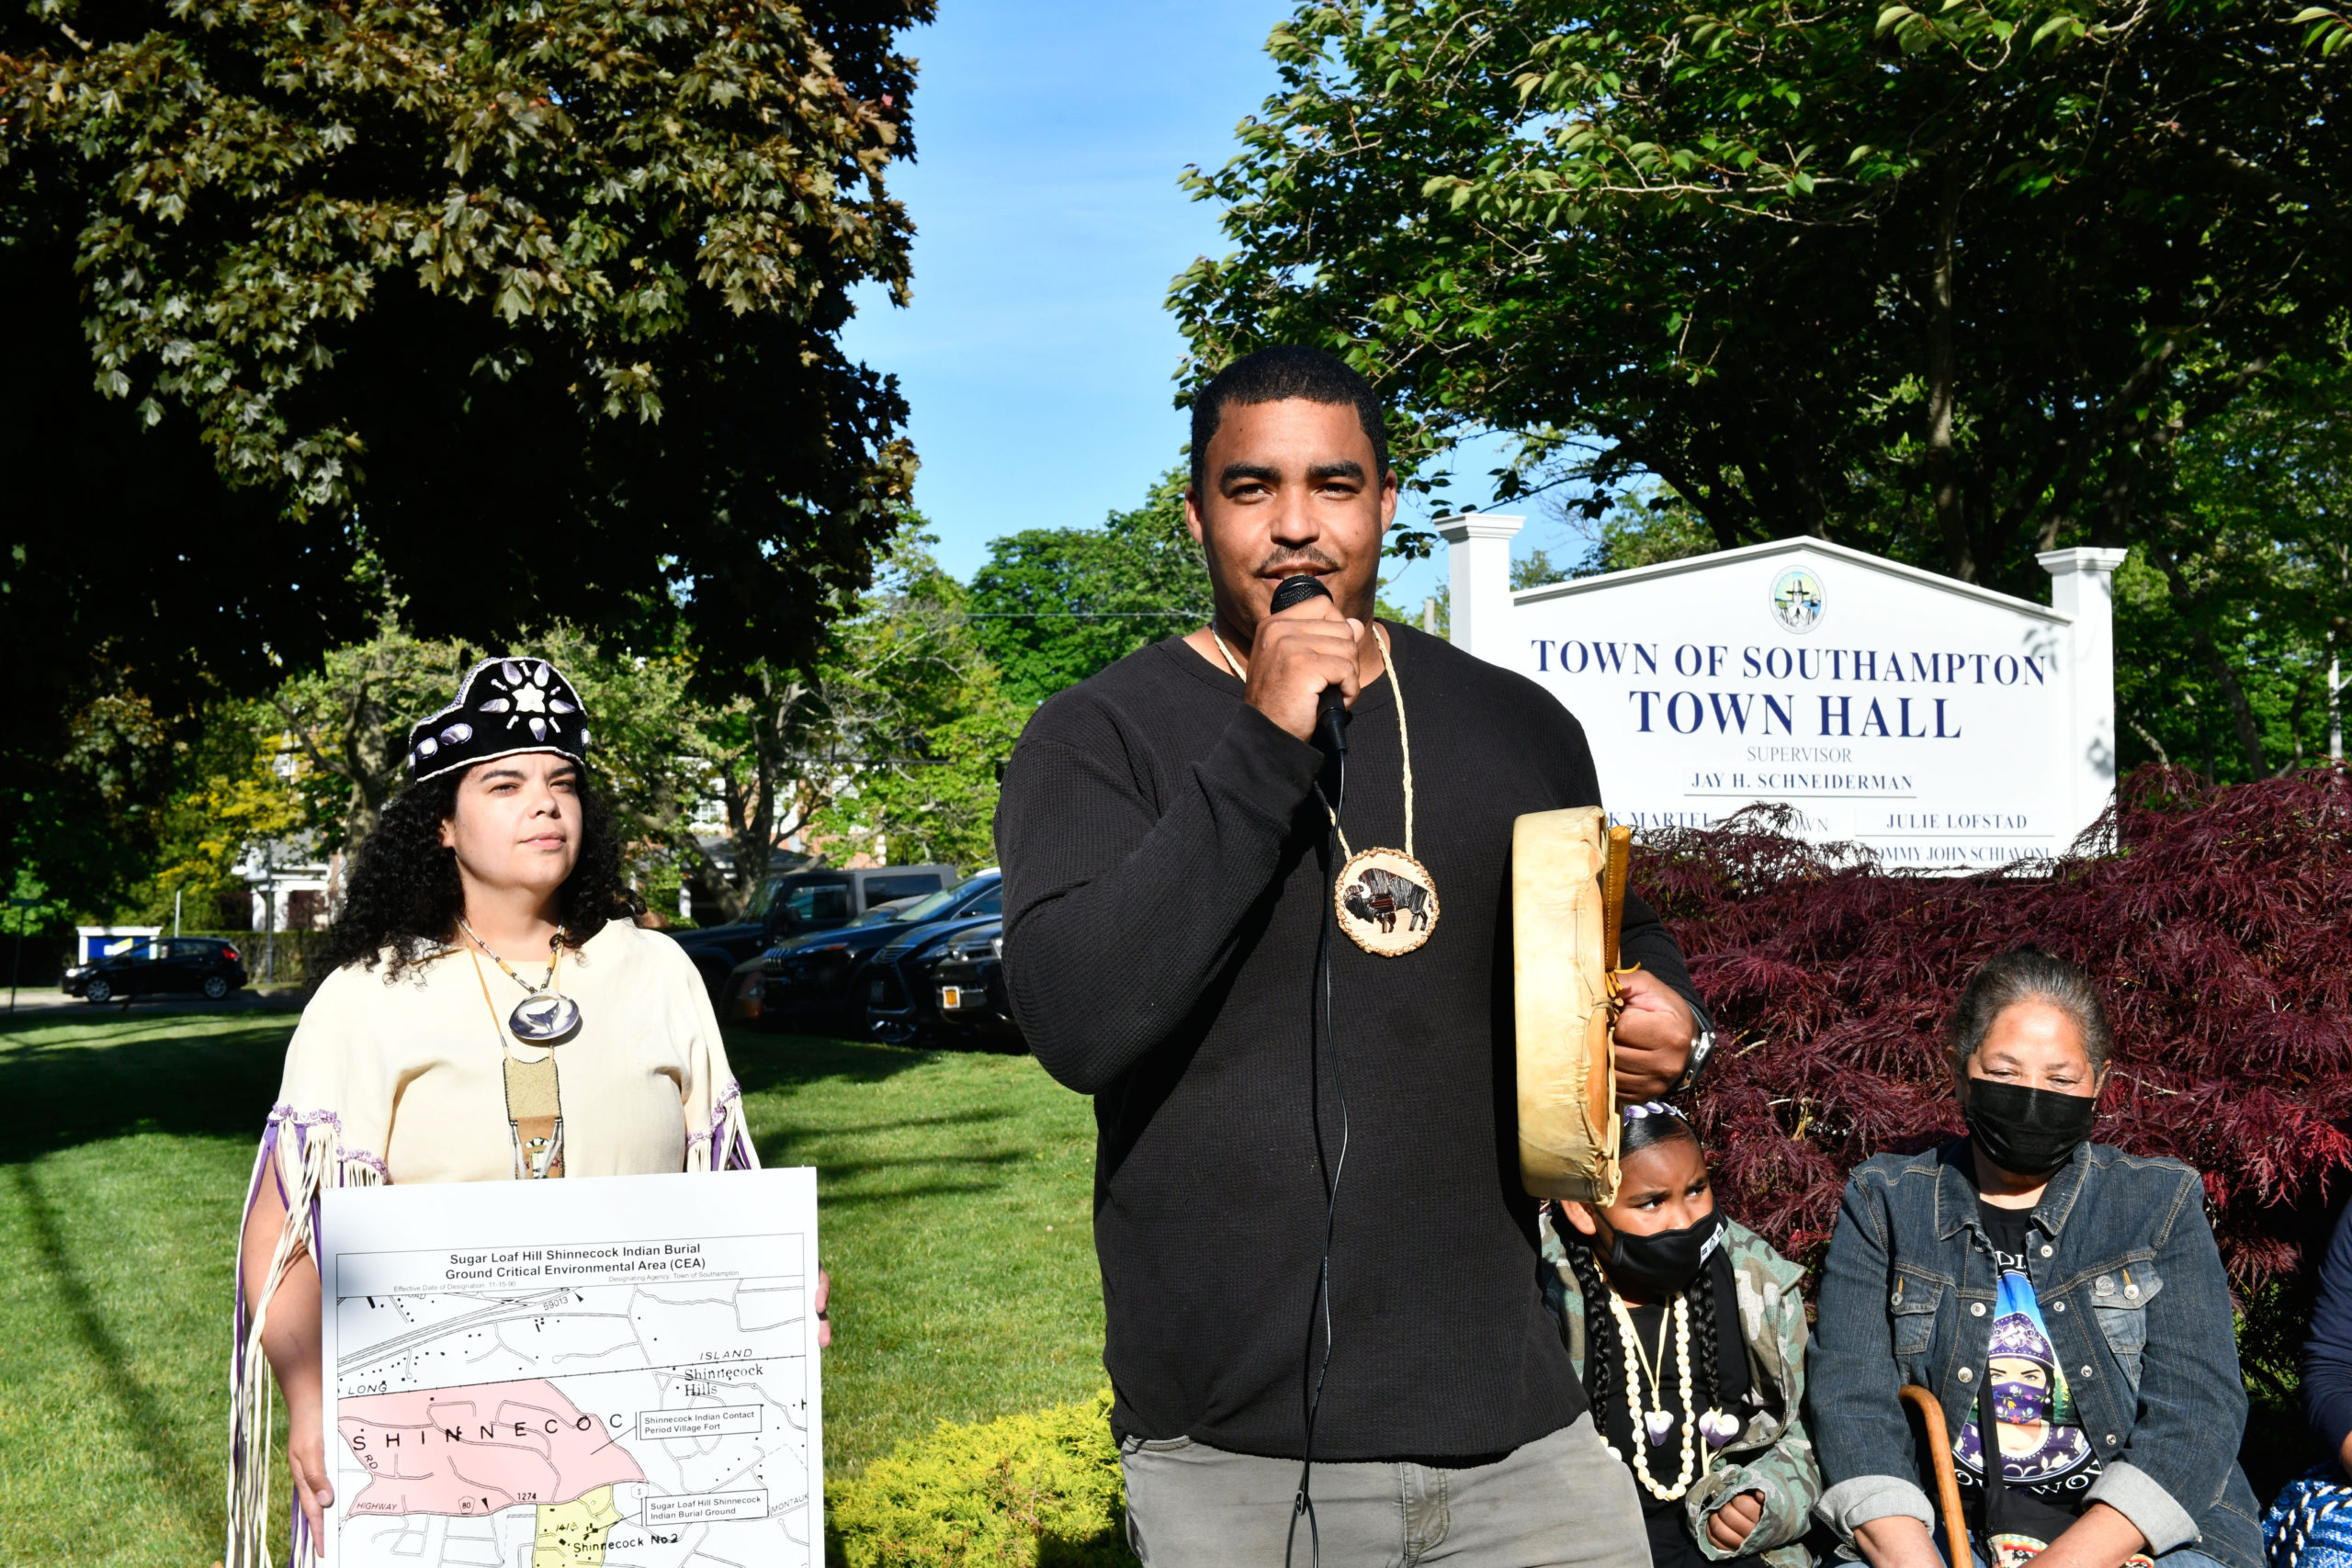 Tela Troge, Shane Week and Rebecca Genia at a rally in front of Southampton Town Hall on Tuesday evening.  DANA SHAW